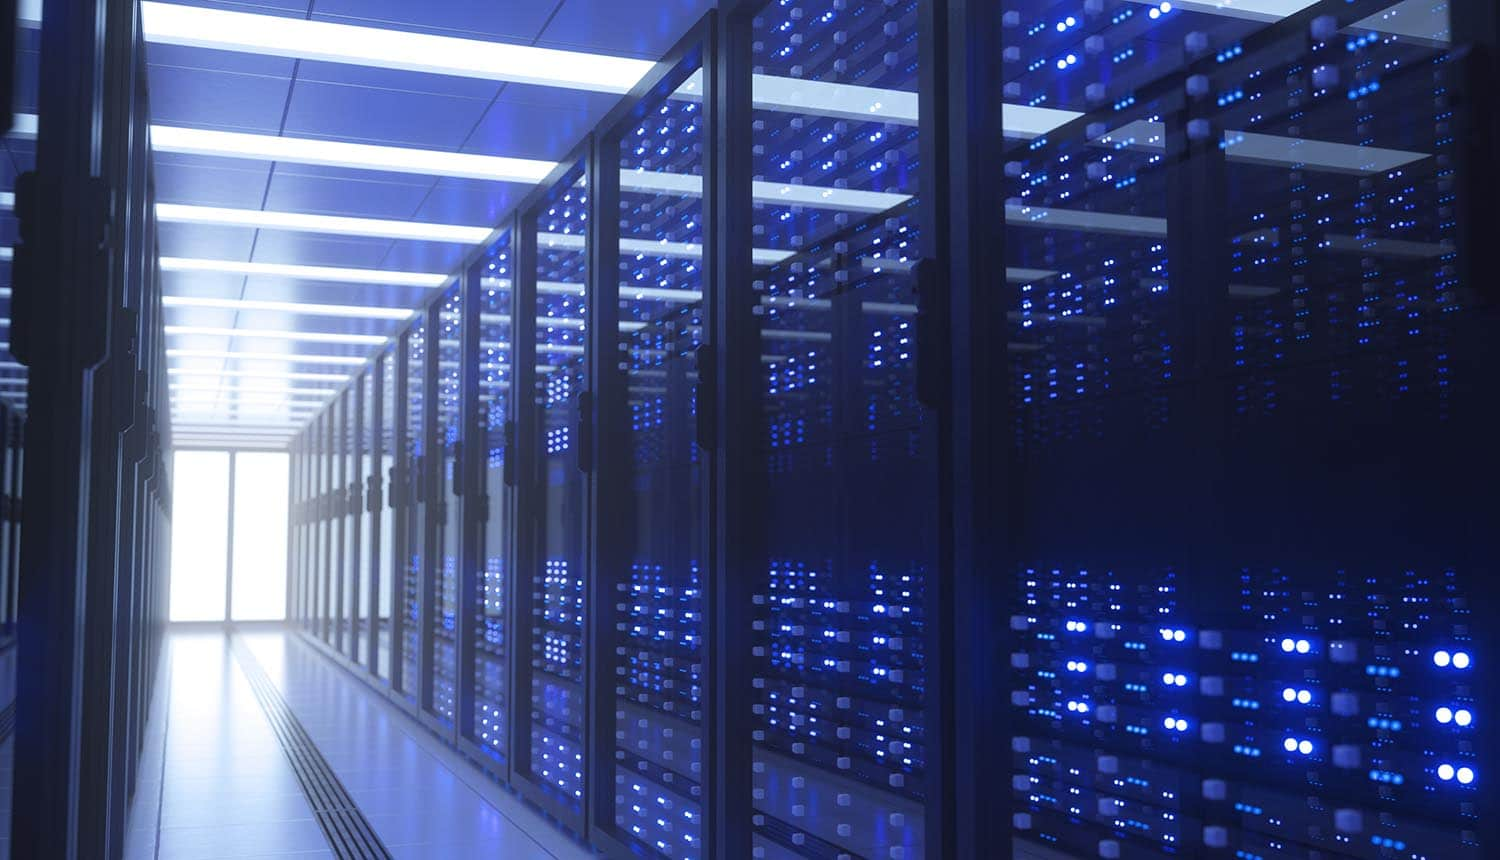 Server racks in data center showing vulnerabilities in virtual appliances